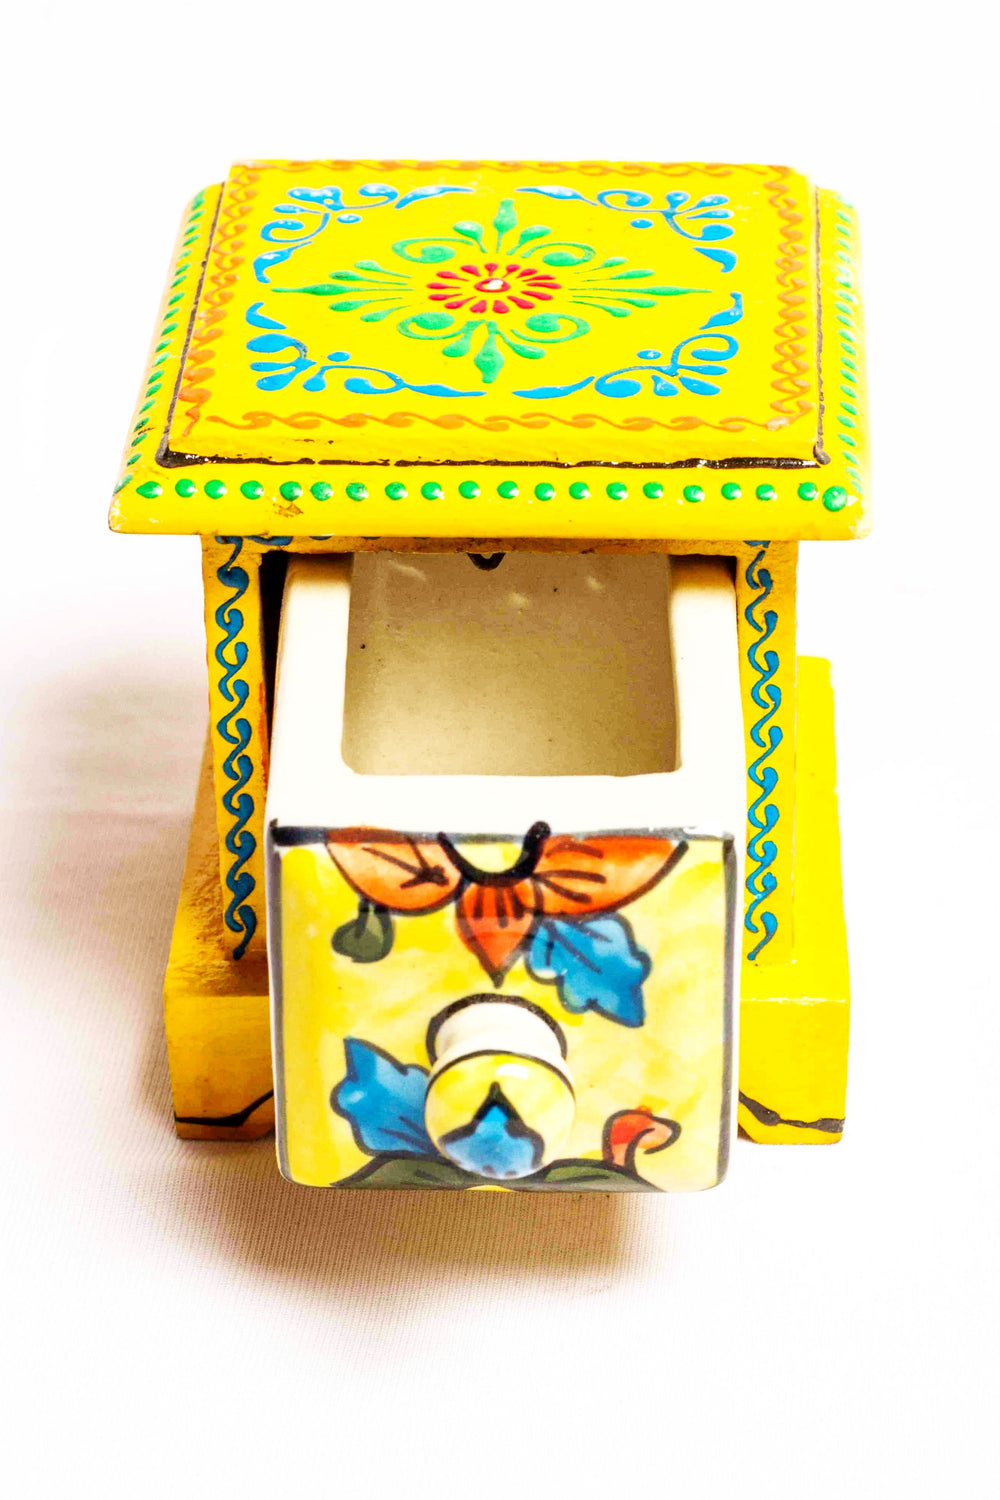 Single drawer in a yellow framed wooden box with painted motifs, with a ceramic drawer